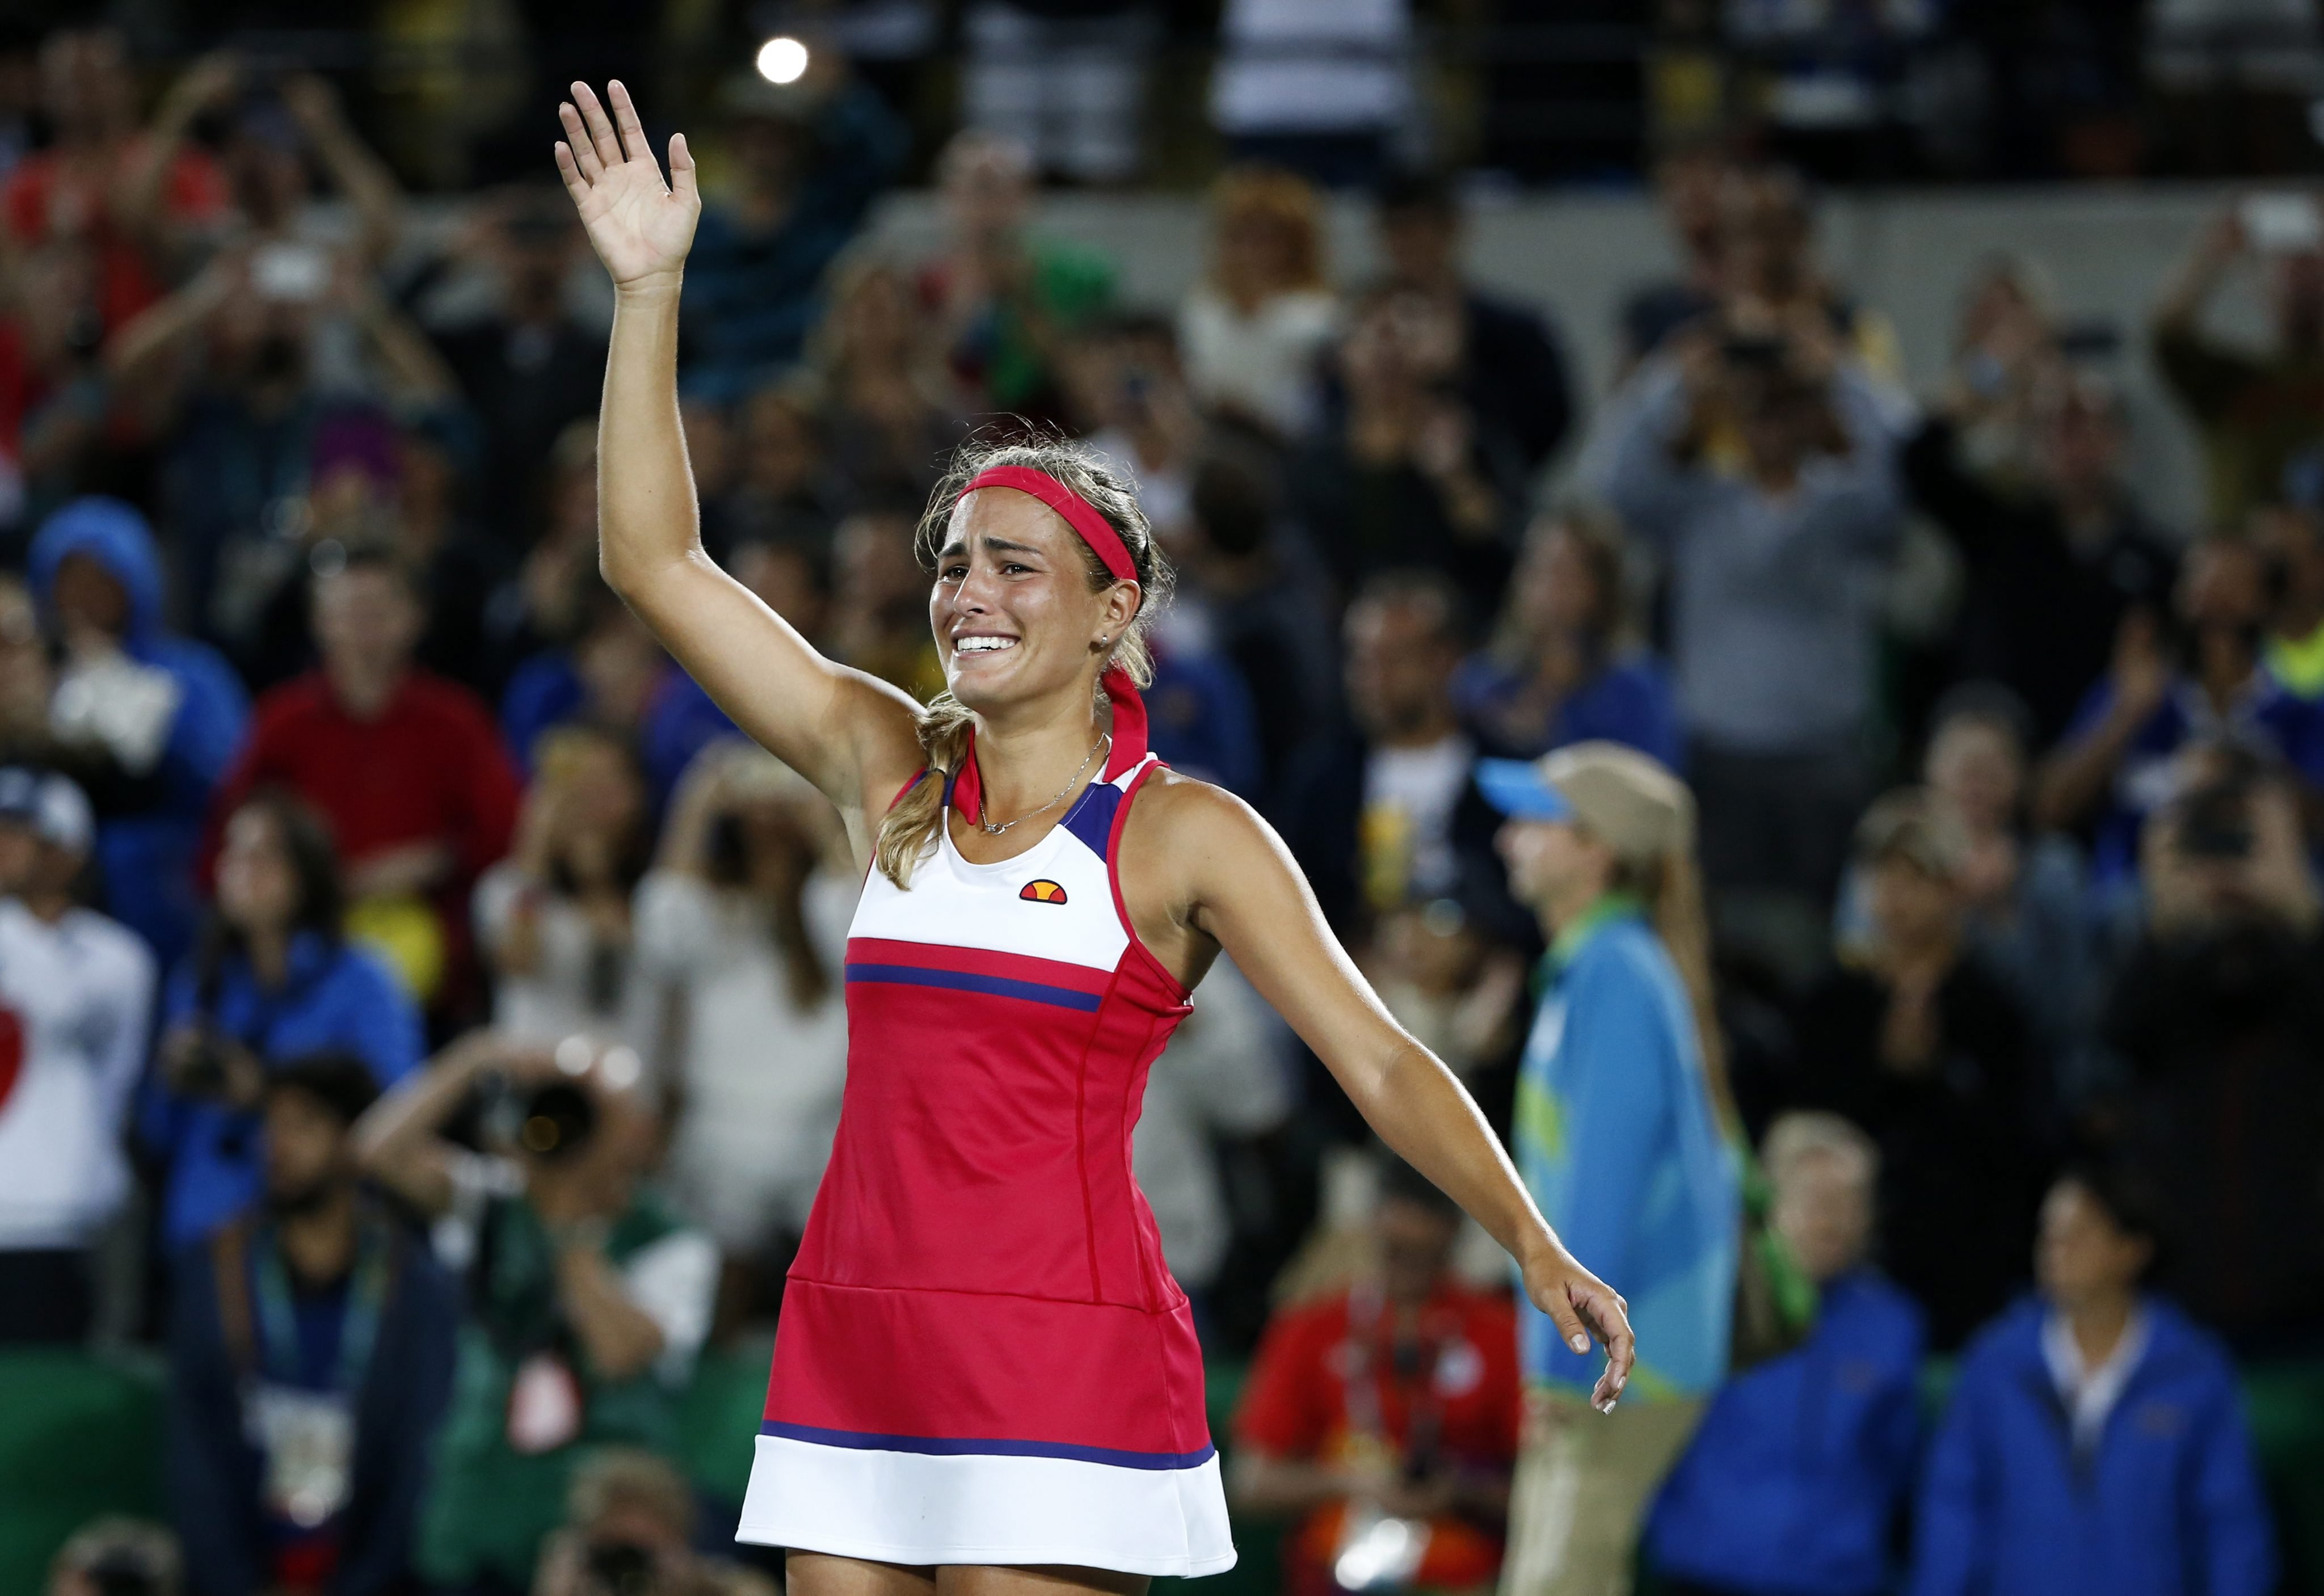 Monica Puig of Puerto Rico celebrates defeating Angelique Kerber of Germany during the women's Singles Gold medal match of the Rio 2016 Olympic Games Tennis events at the Olympic Tennis Centre in the Olympic Park in Rio de Janeiro on Aug. 13, 2016.